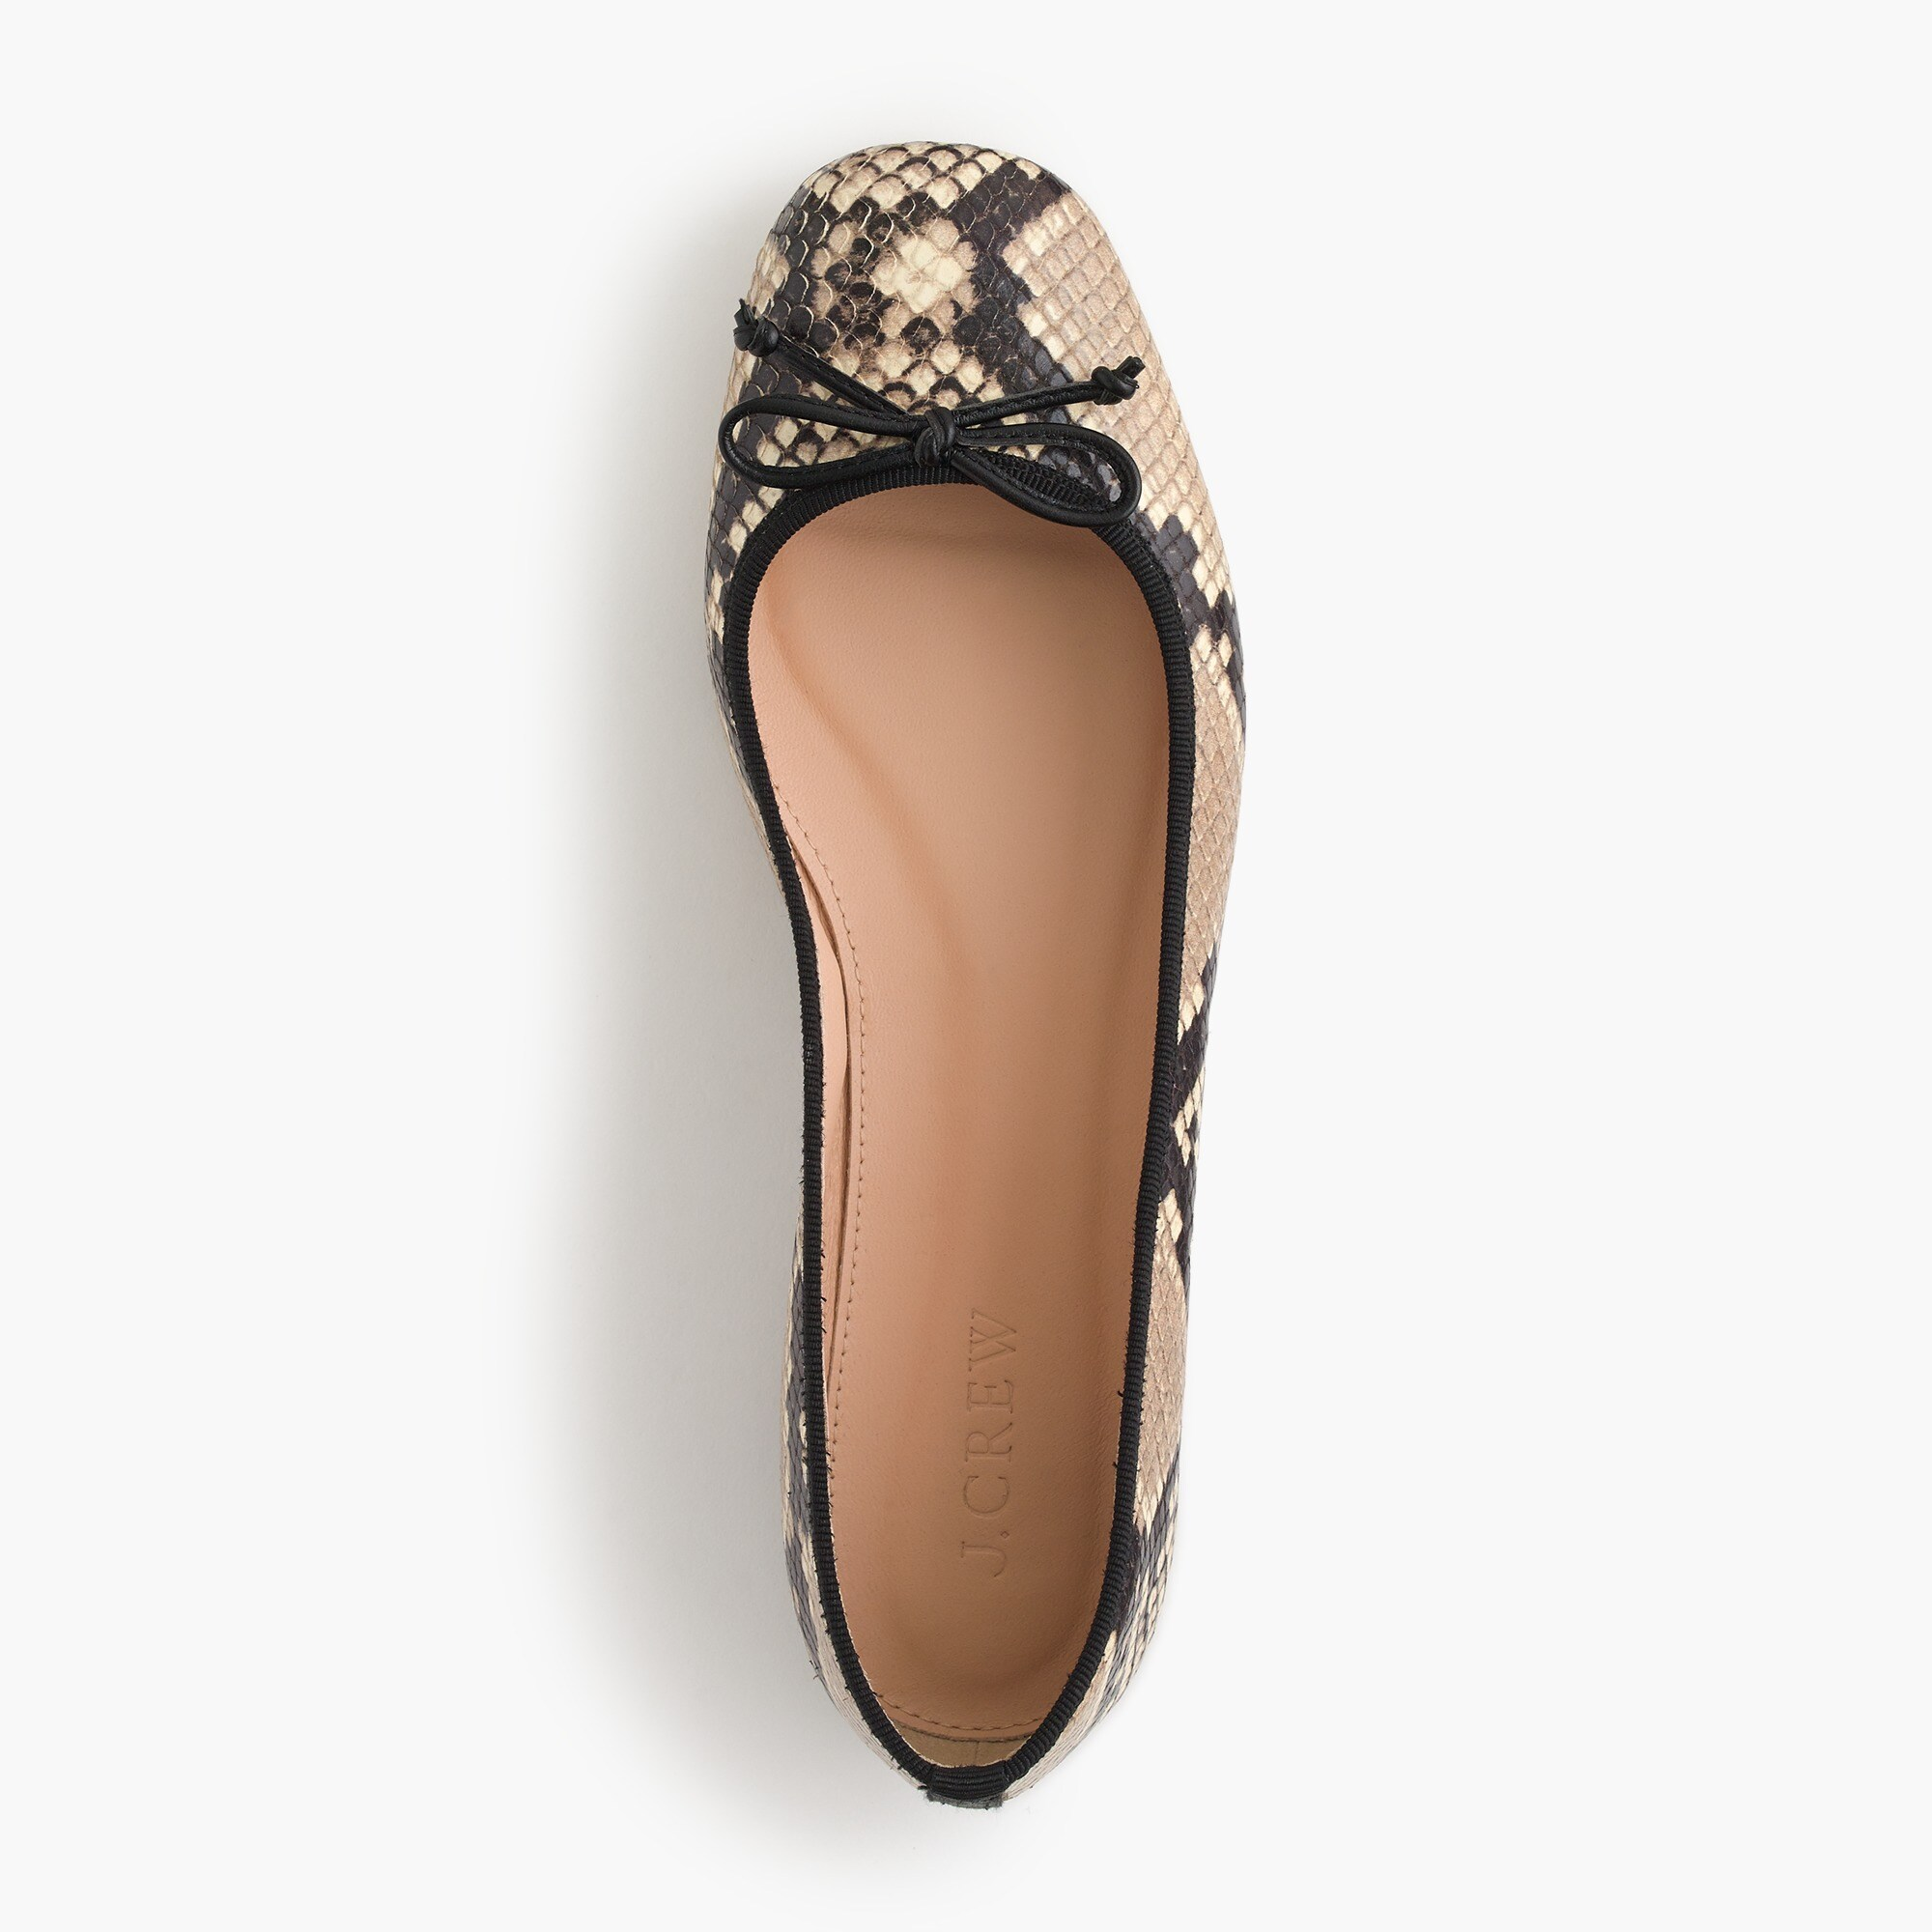 Image 2 for Lily ballet flats in snakeskin-printed leather